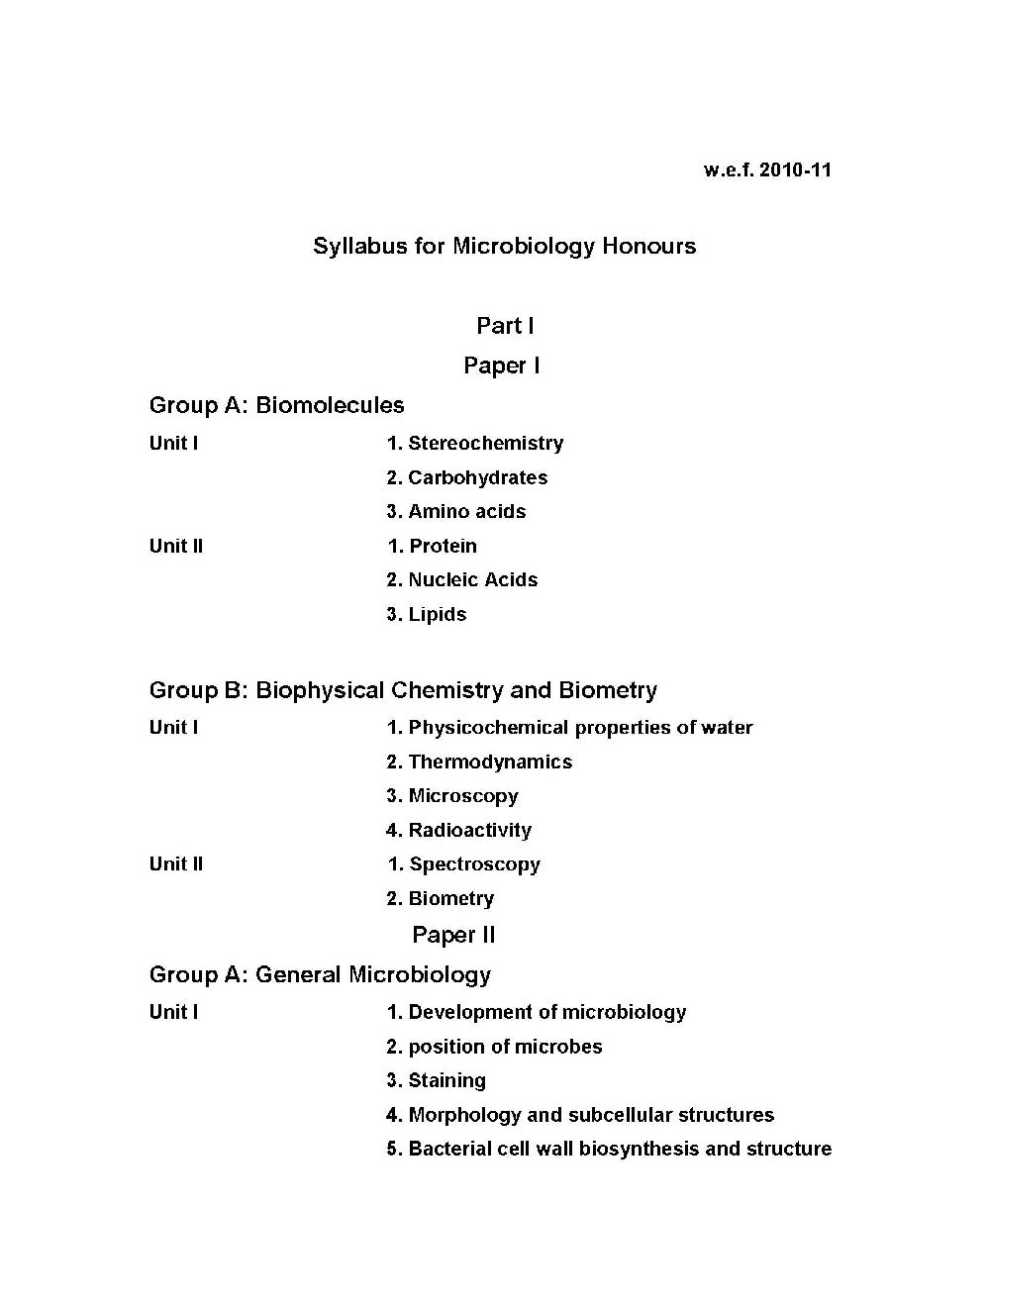 Microbiology subjects at university